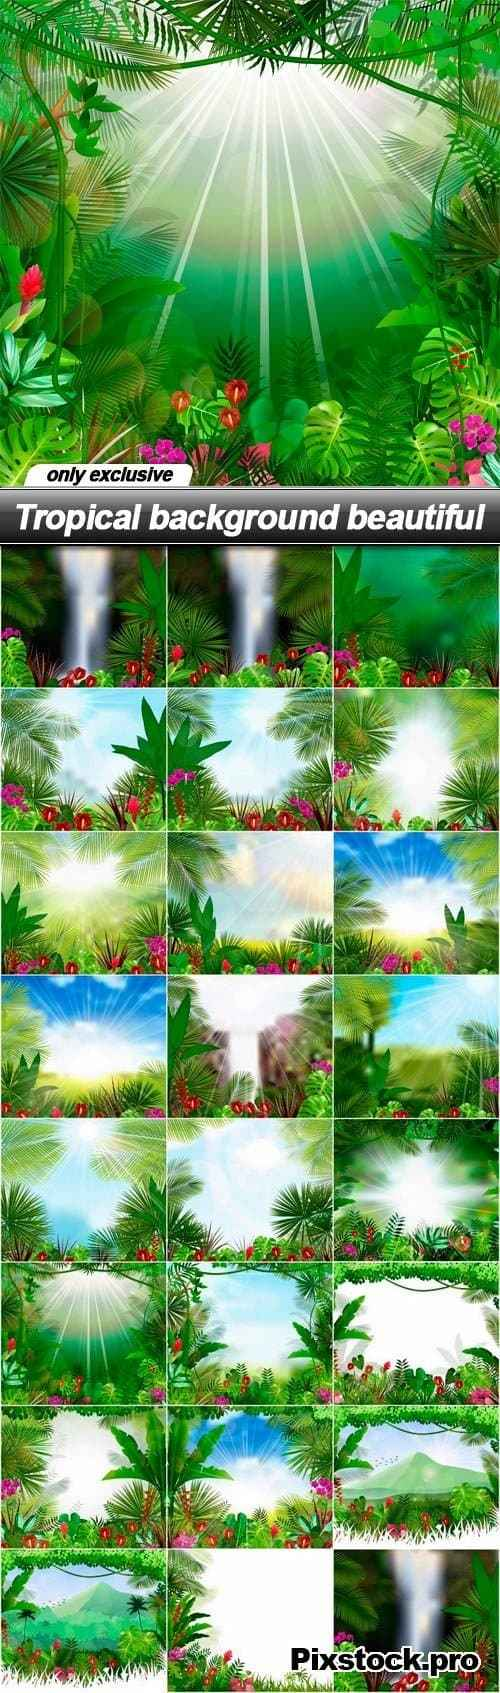 Tropical background beautiful – 25 EPS